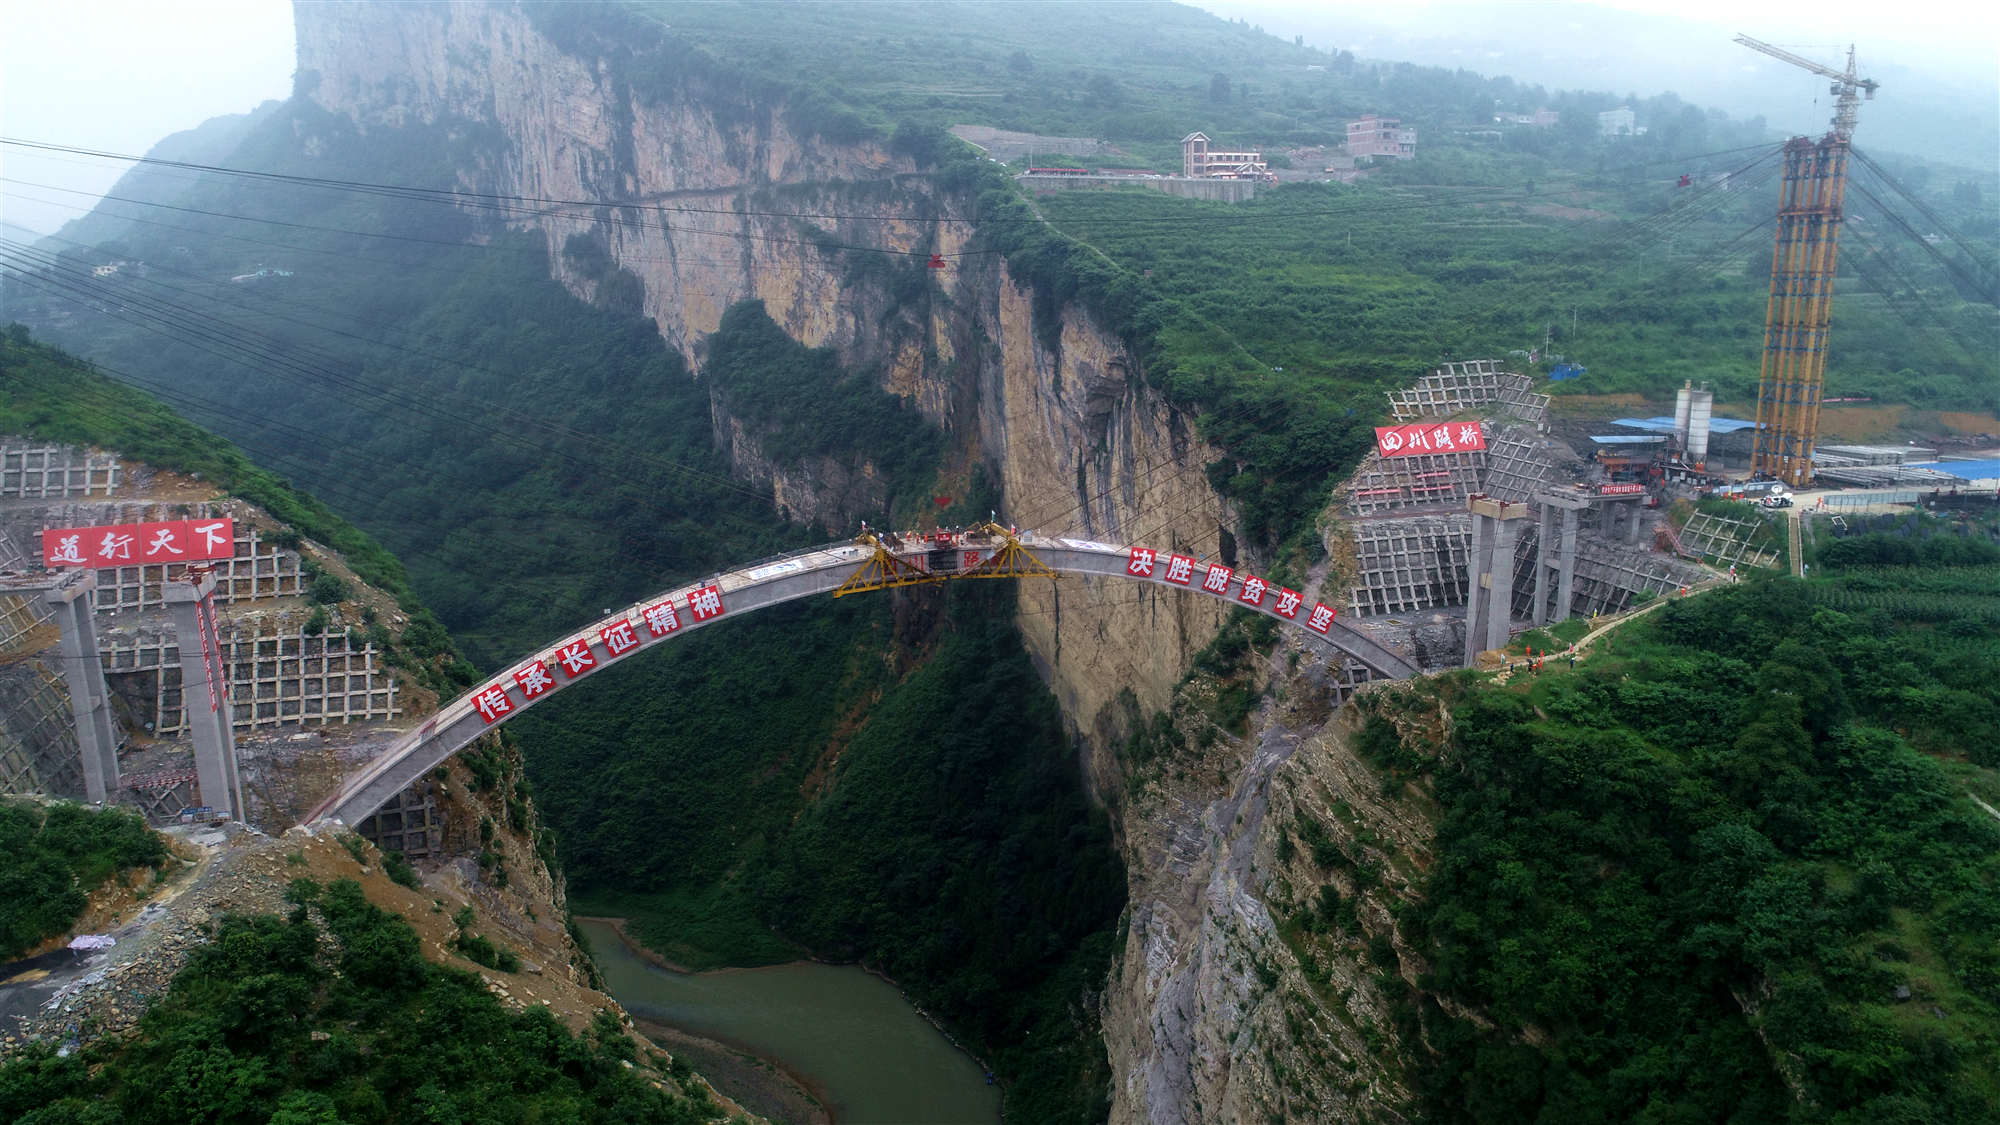 Bridge spanning the Chinese provinces nears completion